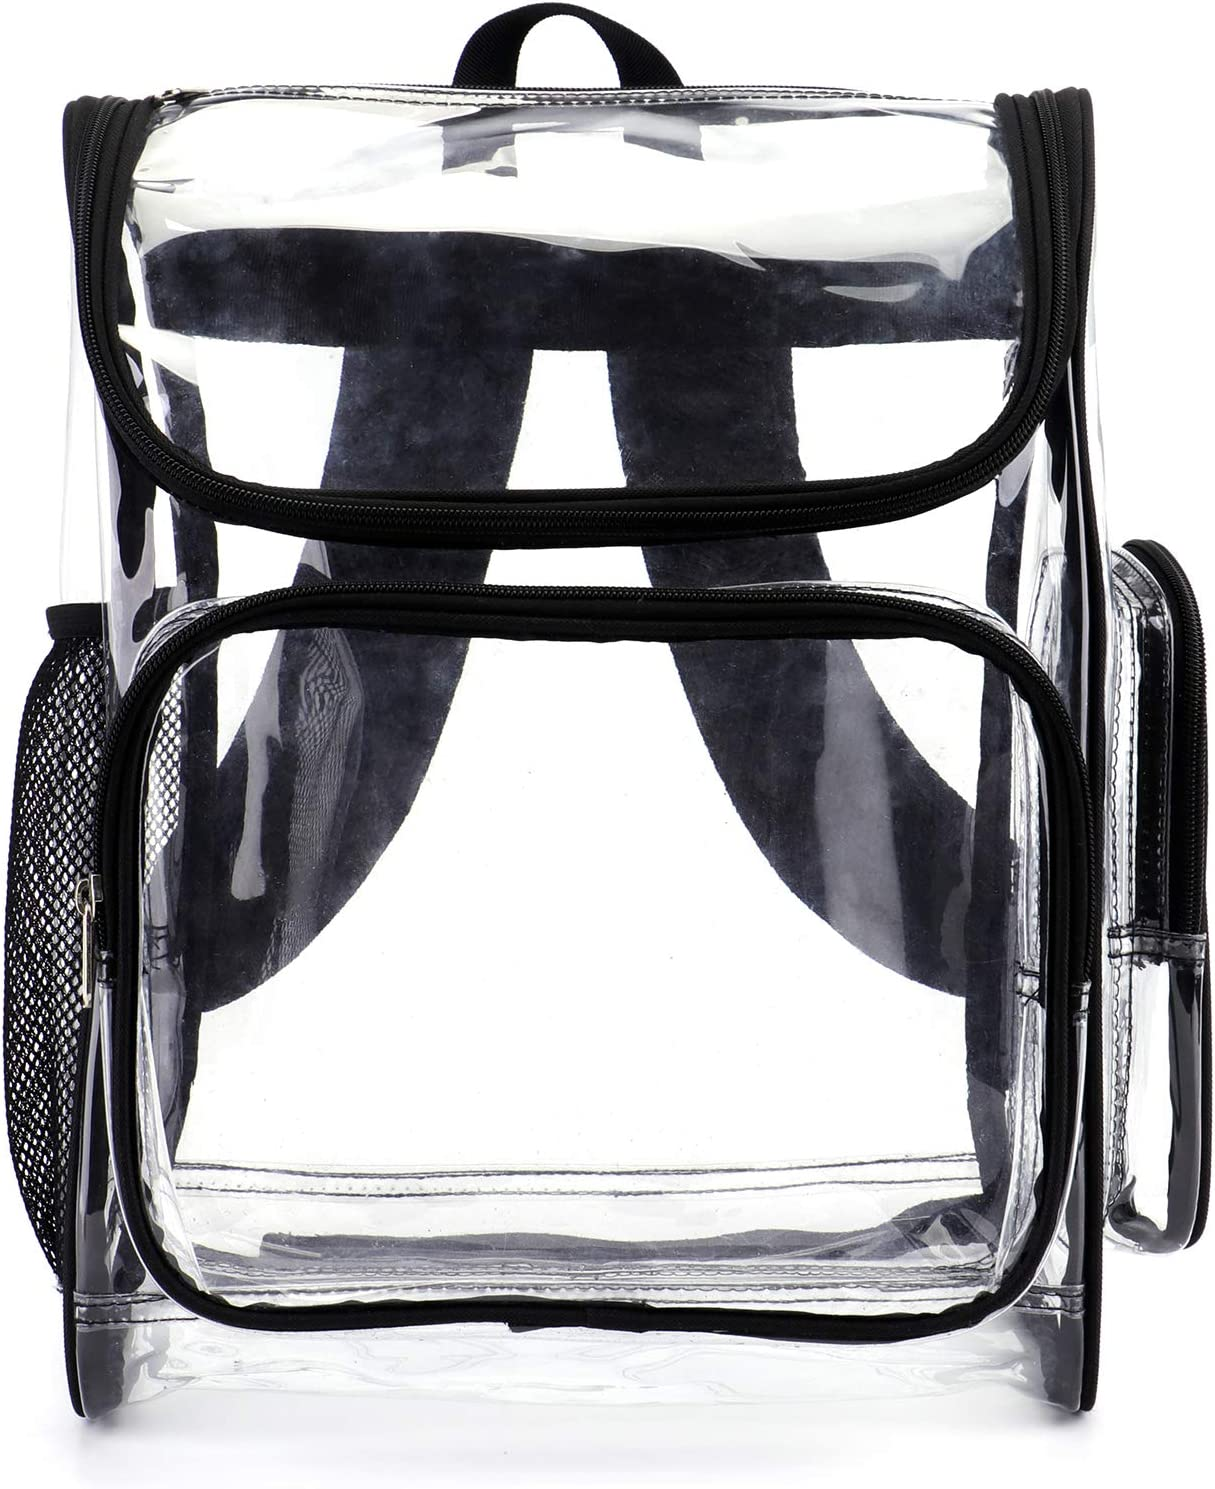 Clear Backpack,Durable PVC Heavy Duty Transparent Backpack Multi-Pockets Good For School,Work,Sports,Stadium,Work,Travel,Outdoor